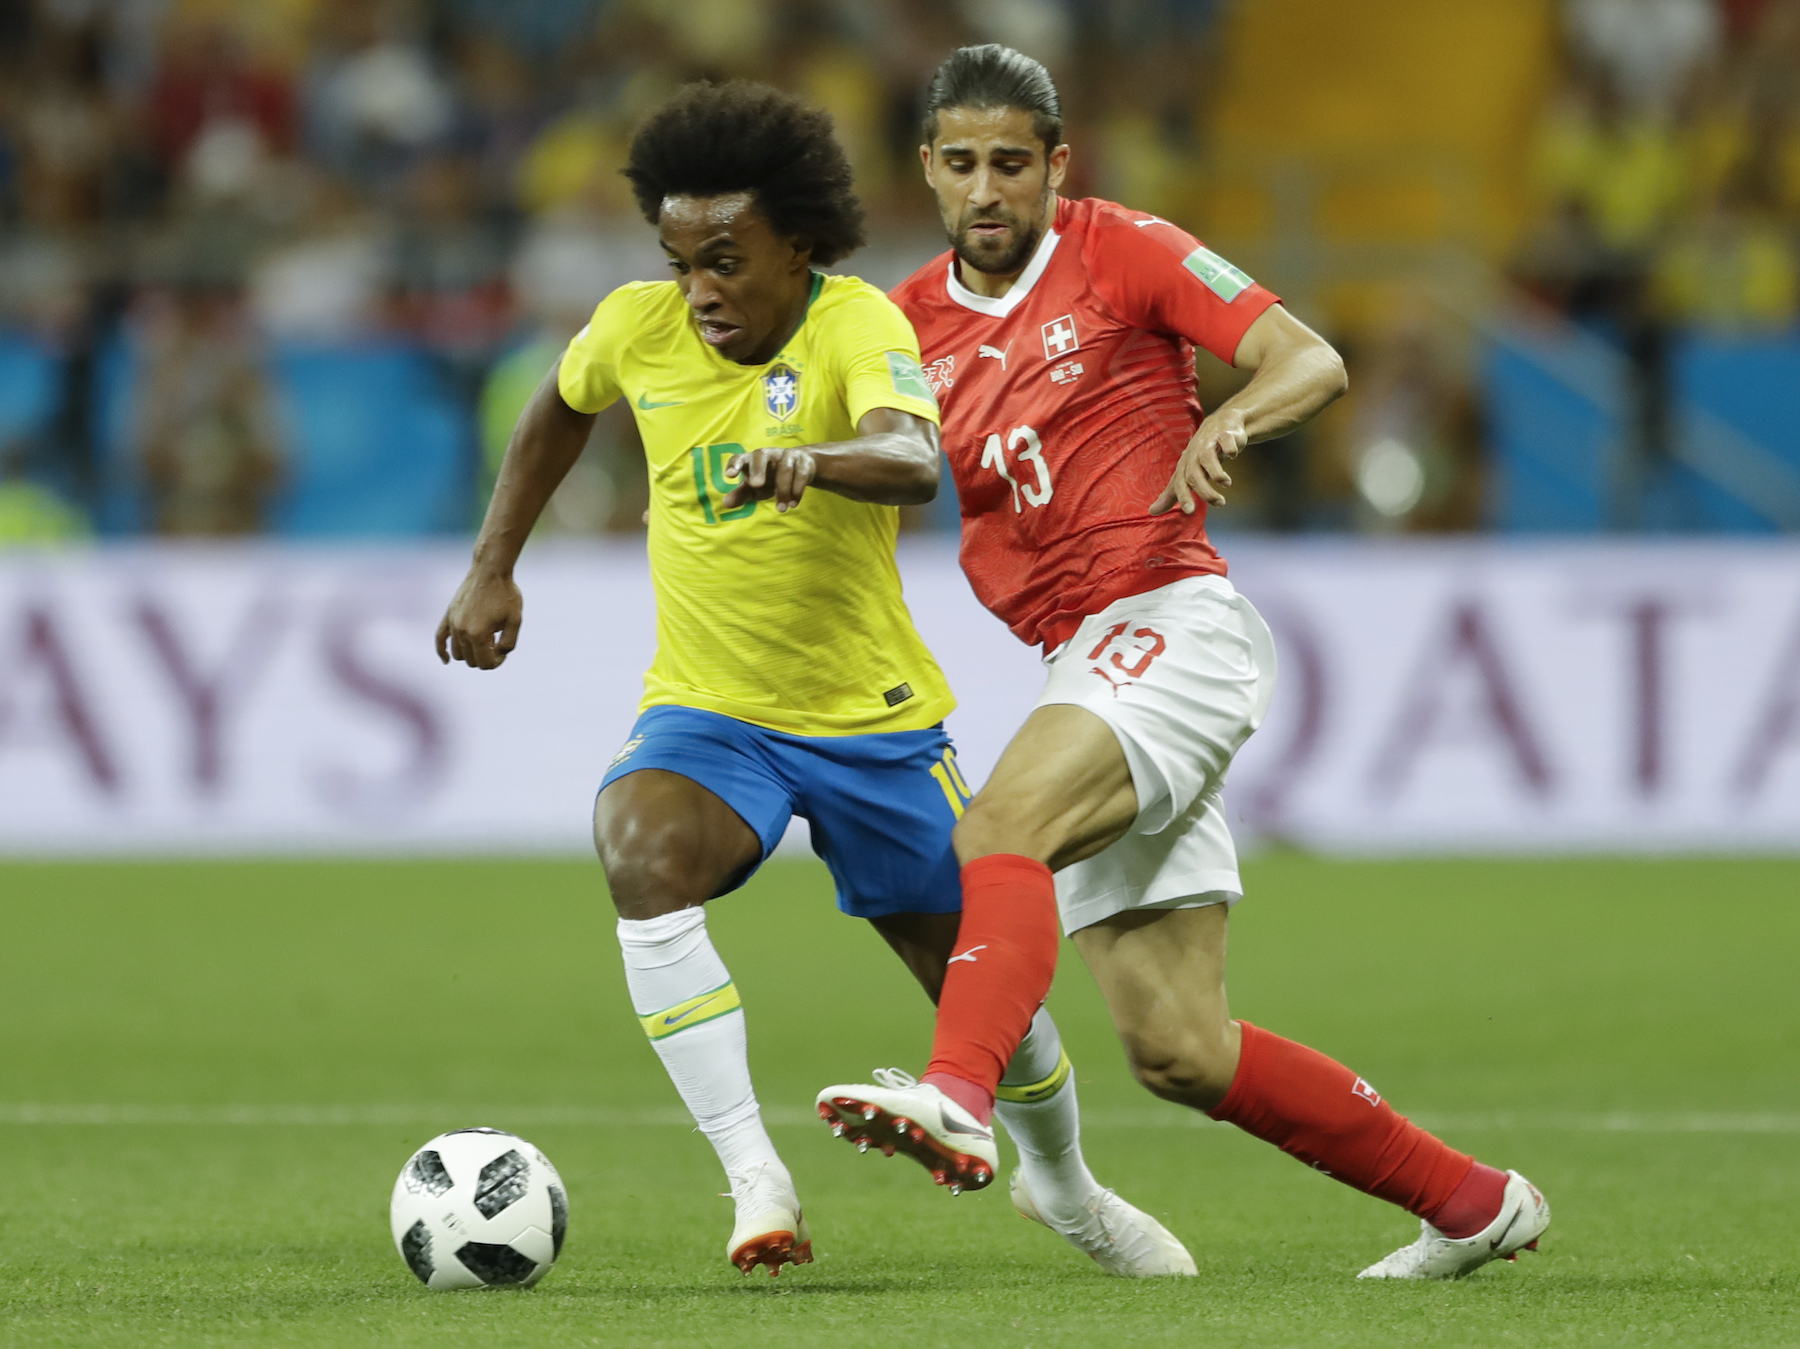 "<div class=""meta image-caption""><div class=""origin-logo origin-image ap""><span>AP</span></div><span class=""caption-text"">Brazil's Paulinho, left, is challenged by Switzerland's Ricardo Rodriguez during their group E match at the 2018 soccer World Cup in the Rostov Arena in Rostov-on-Don, Russia. (AP Photo/Andre Penner)</span></div>"